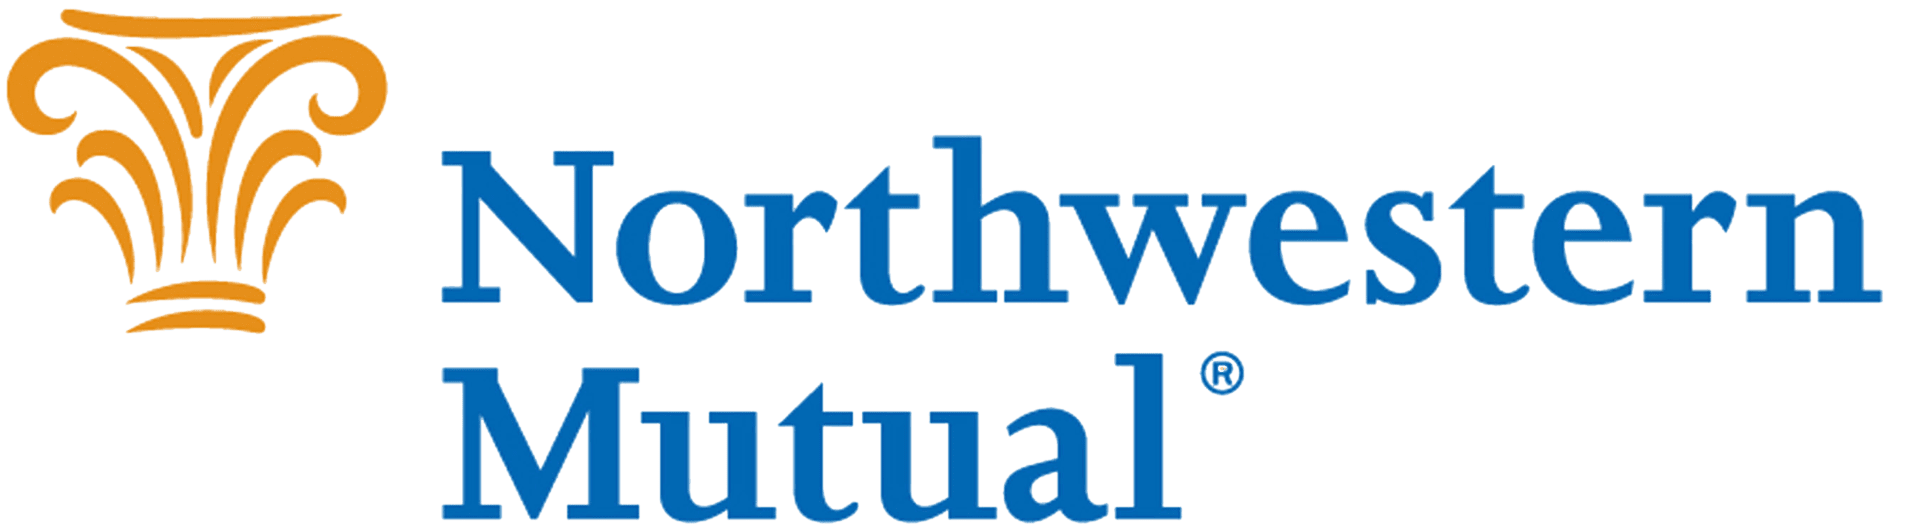 Northwestern-Mutual-LOGO